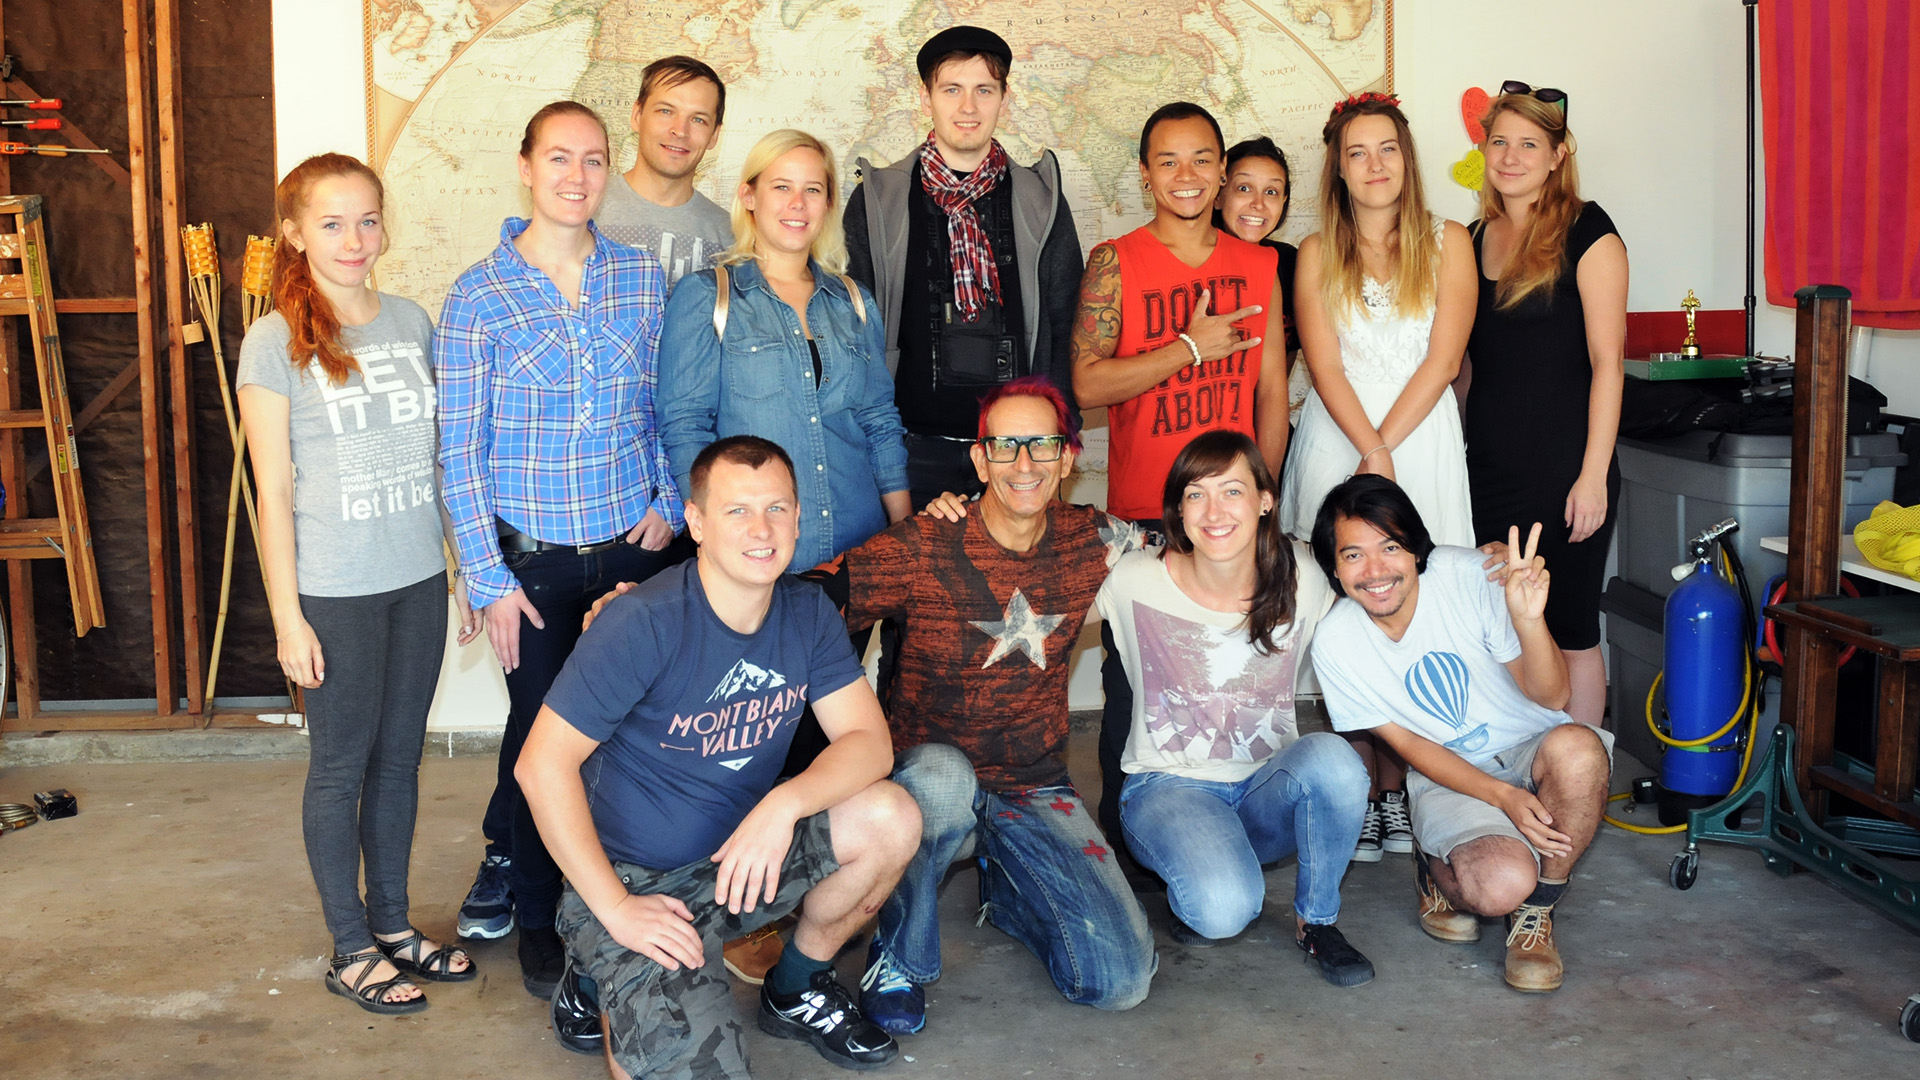 13 people posing for a group portrait in front of a large world map